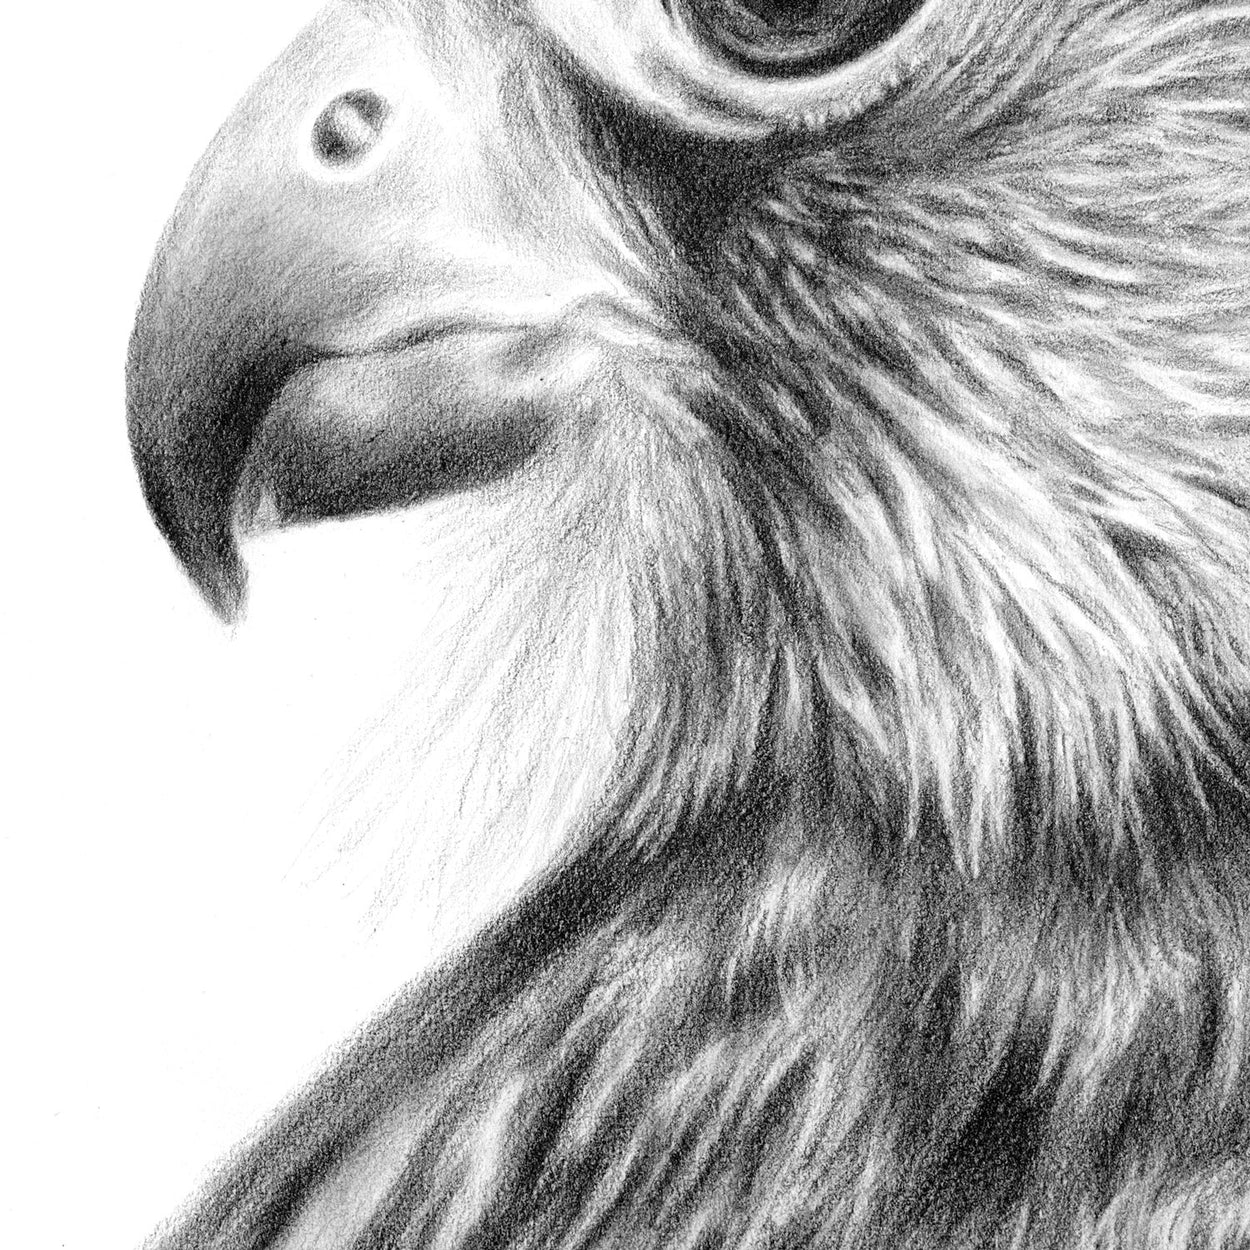 Kestrel Drawing Close-Up 1 - The Thriving Wild